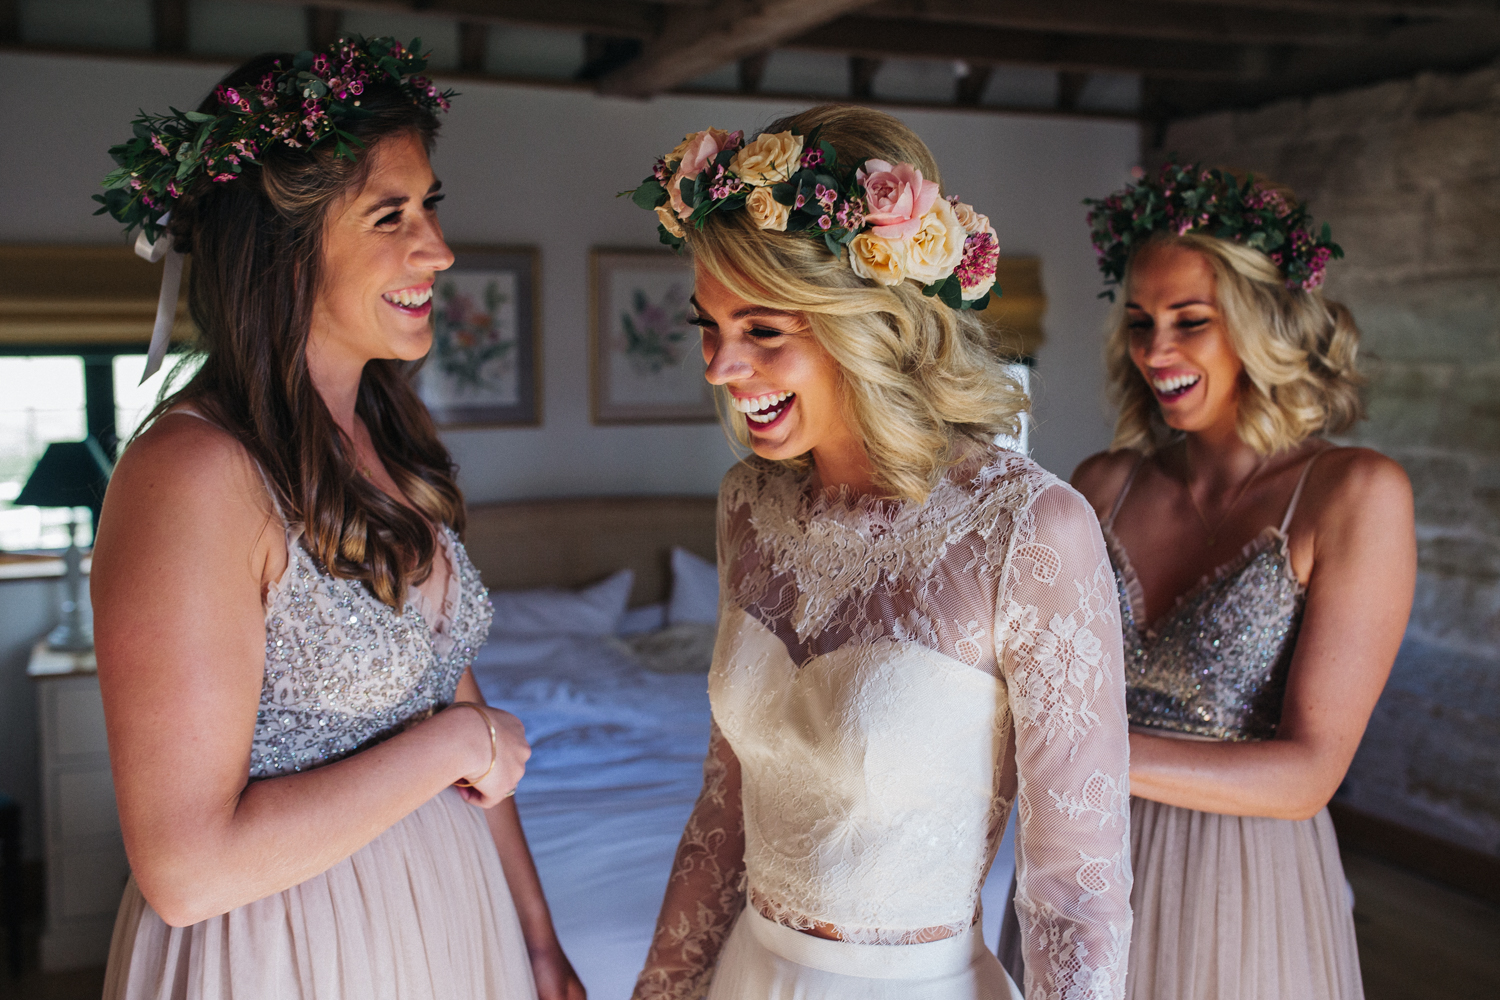 a bride laughs with her two bridesmaids as they do her dress up. hendall manor barn wedding near brighton. stop motion wedding films videos uk